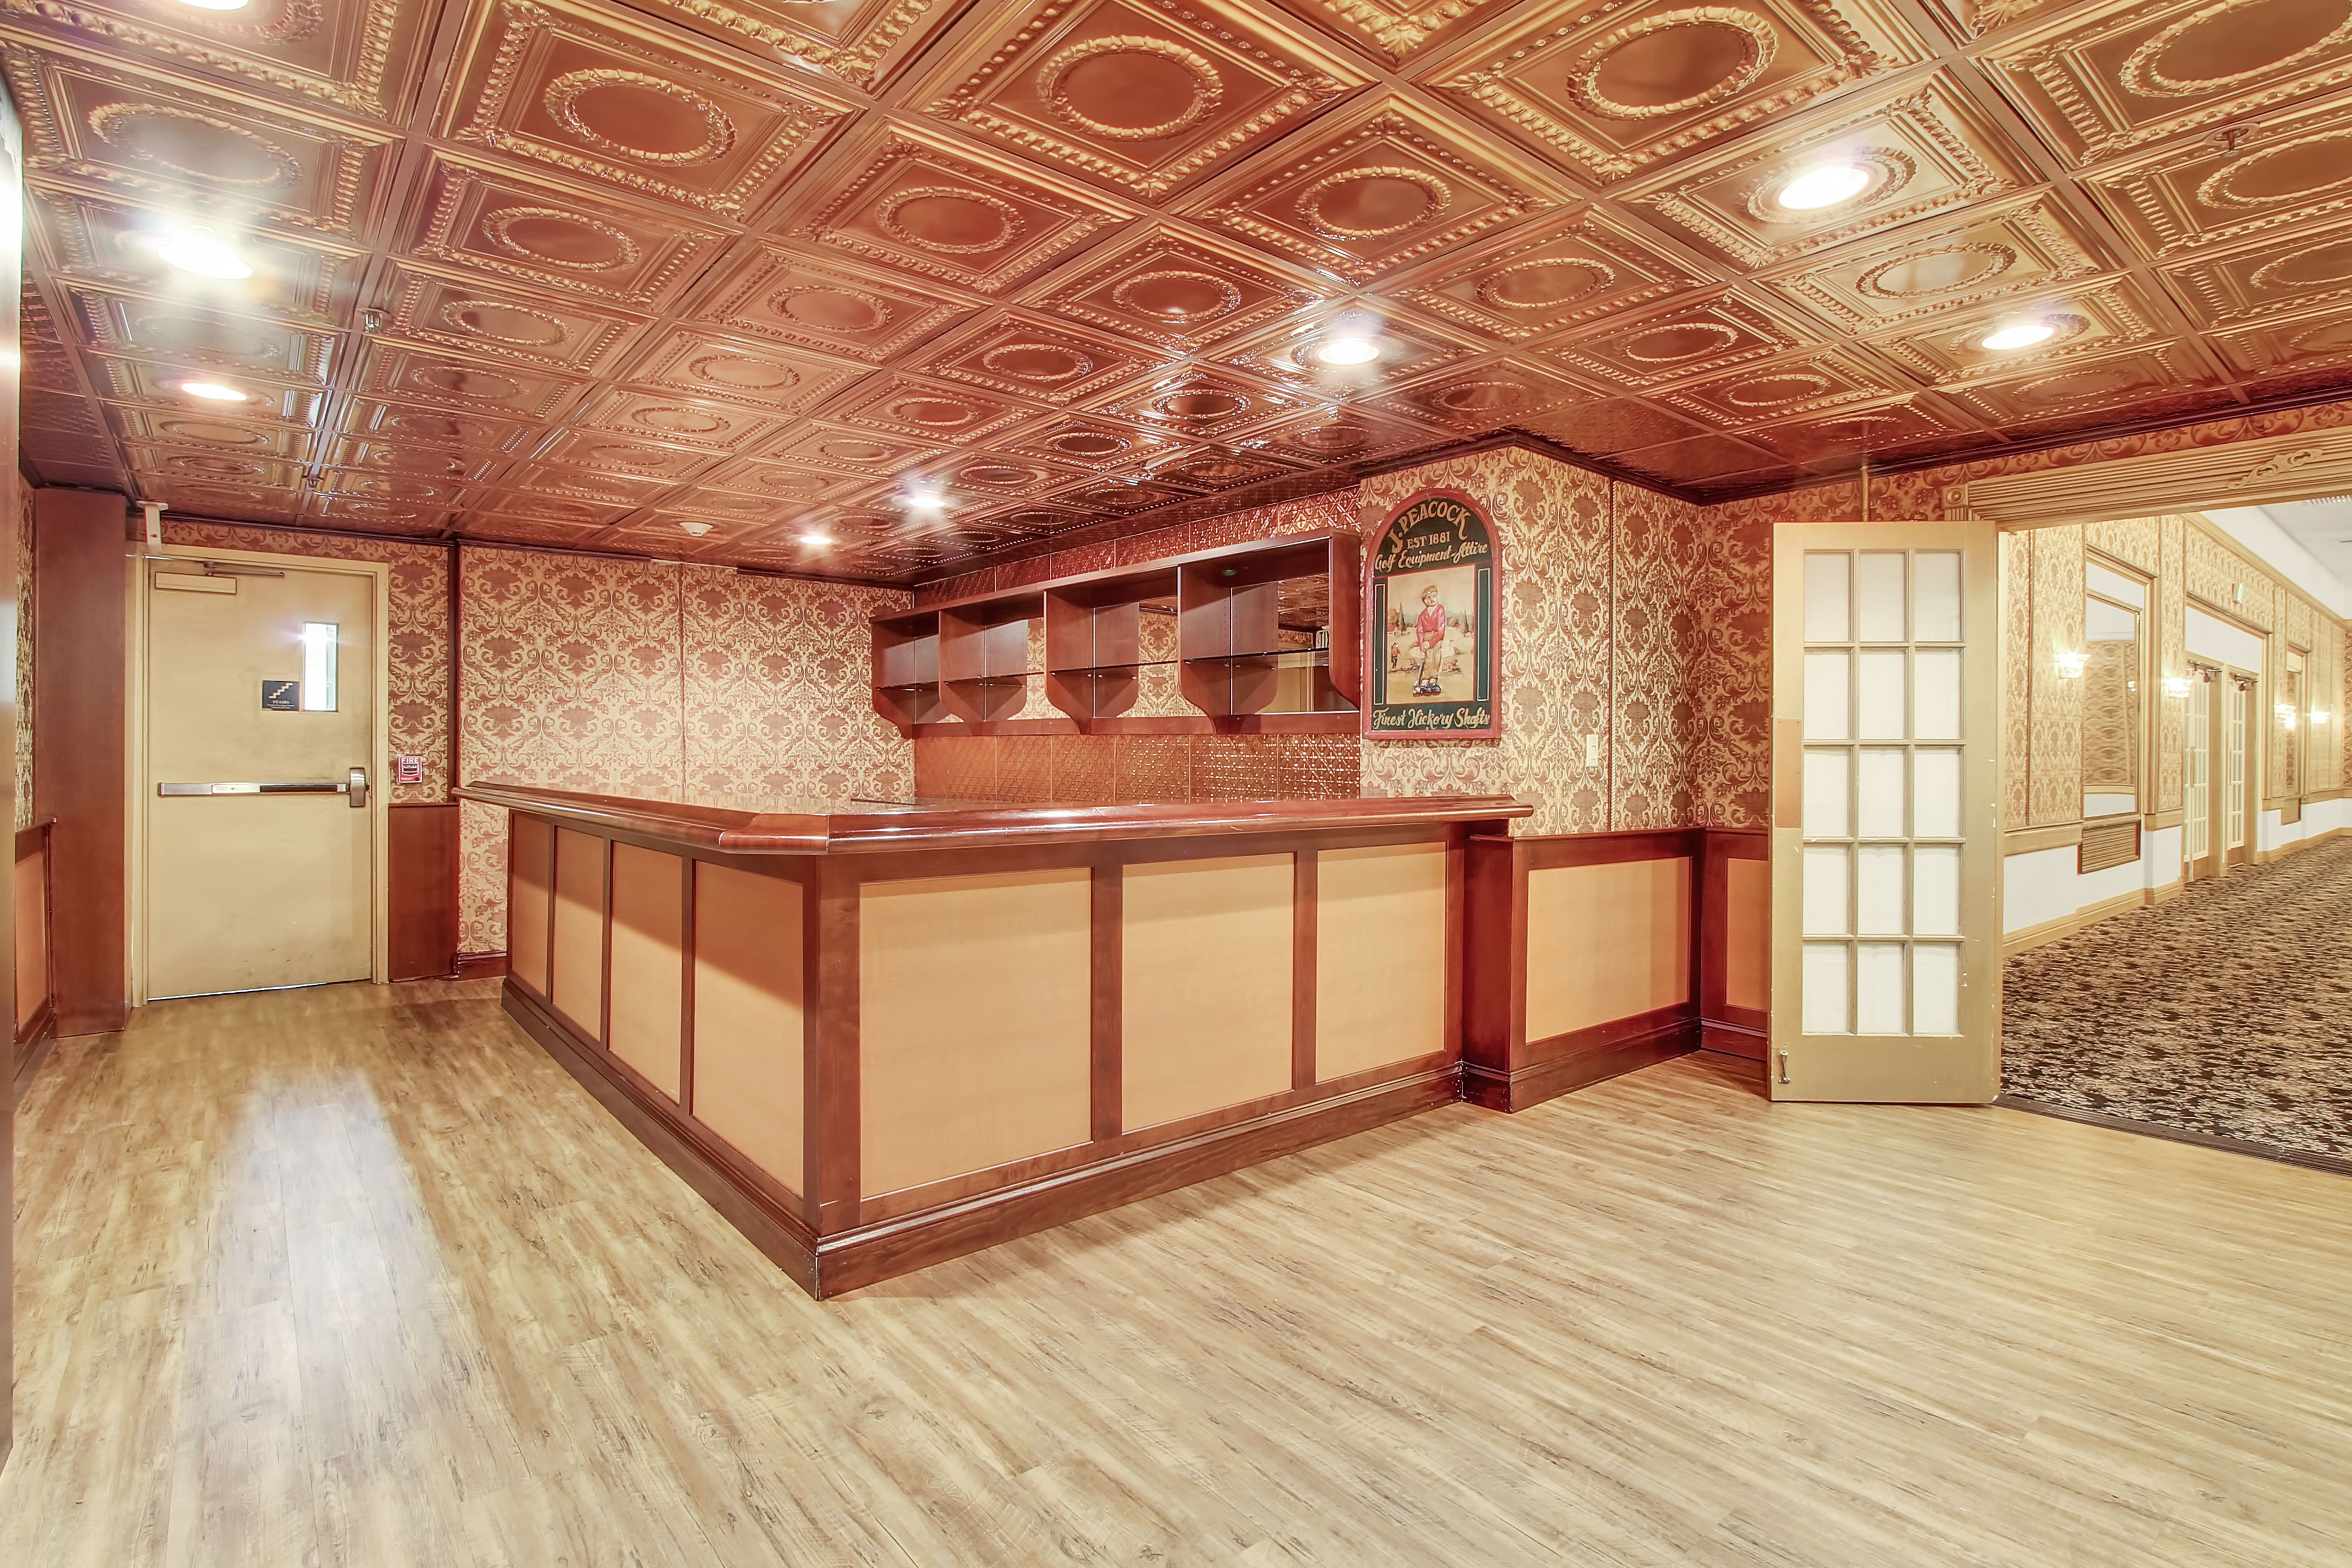 Attached To The Presidential Ballroom This Barroom Is Sure To